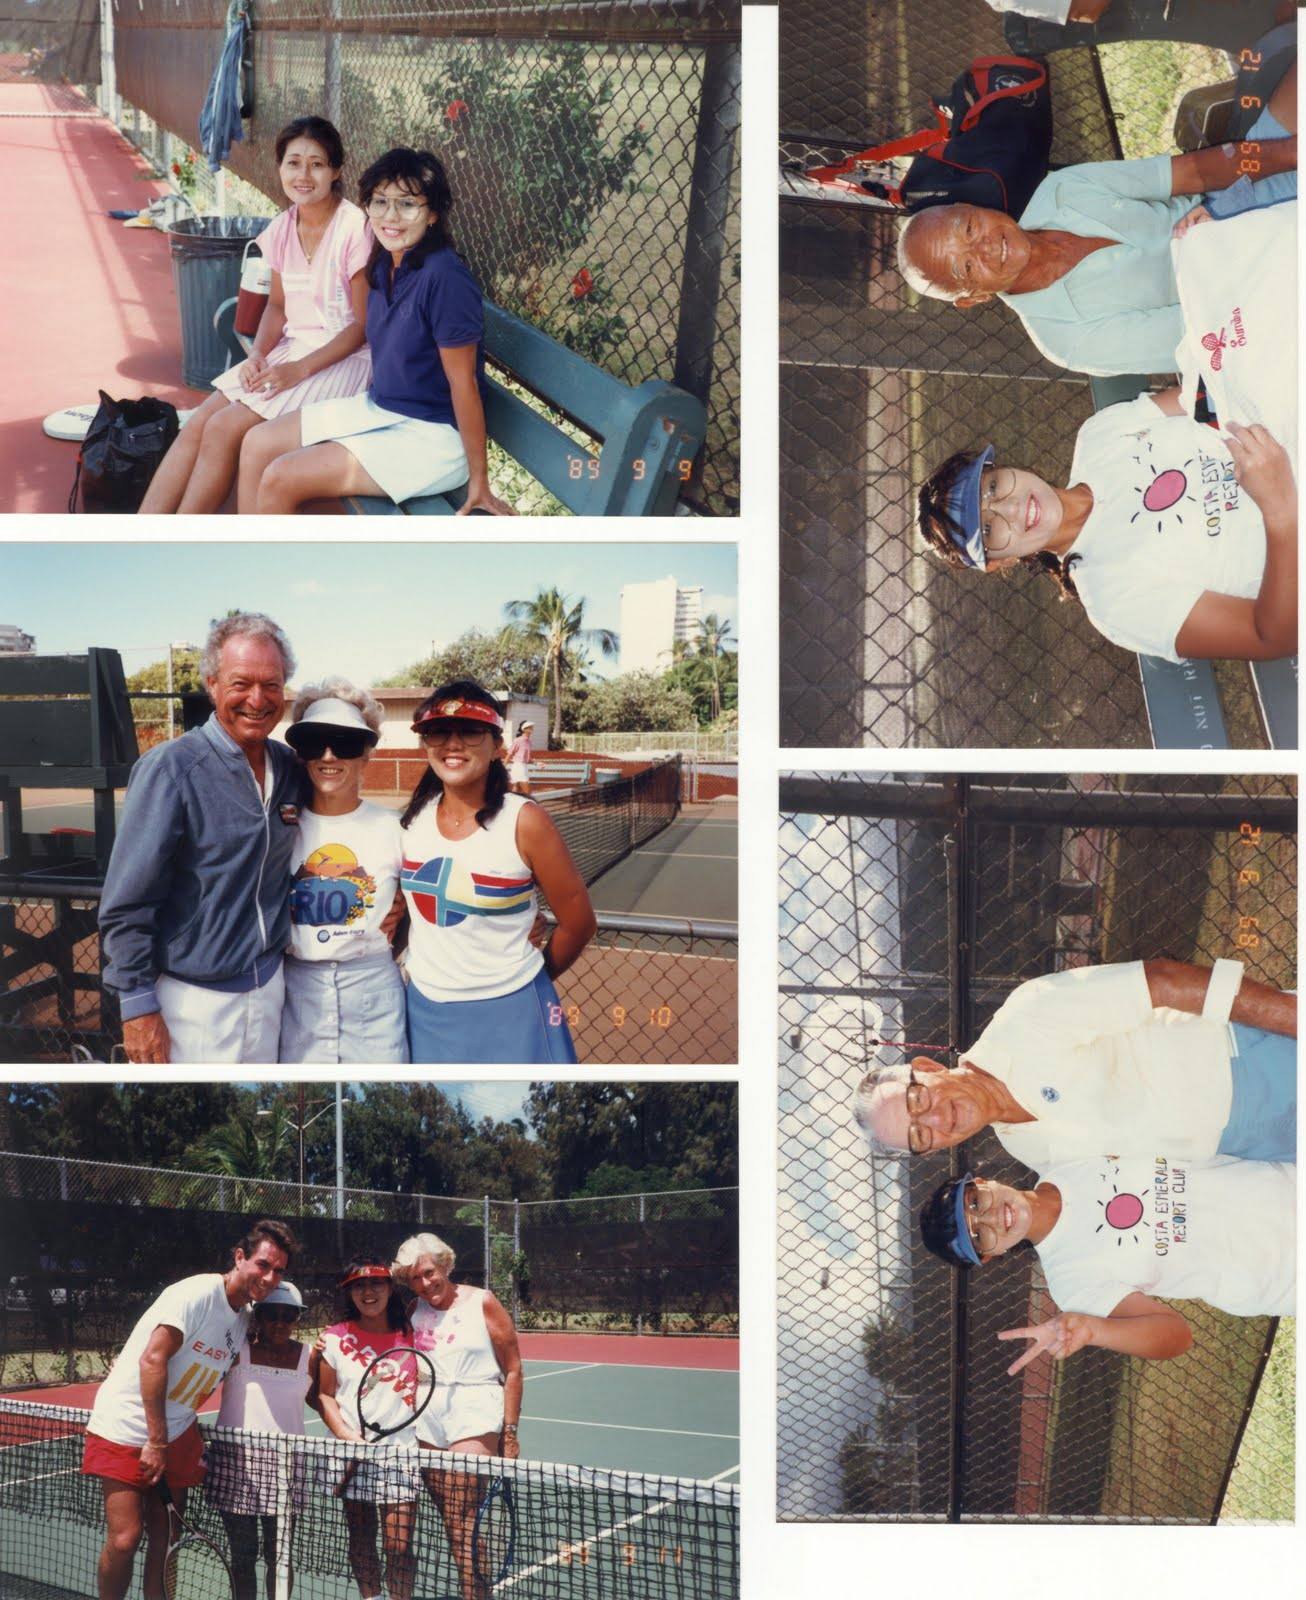 Tennis Friends in the World and HI. Successful Aging and Gerontology.      ハワイと世界のテニス仲間.